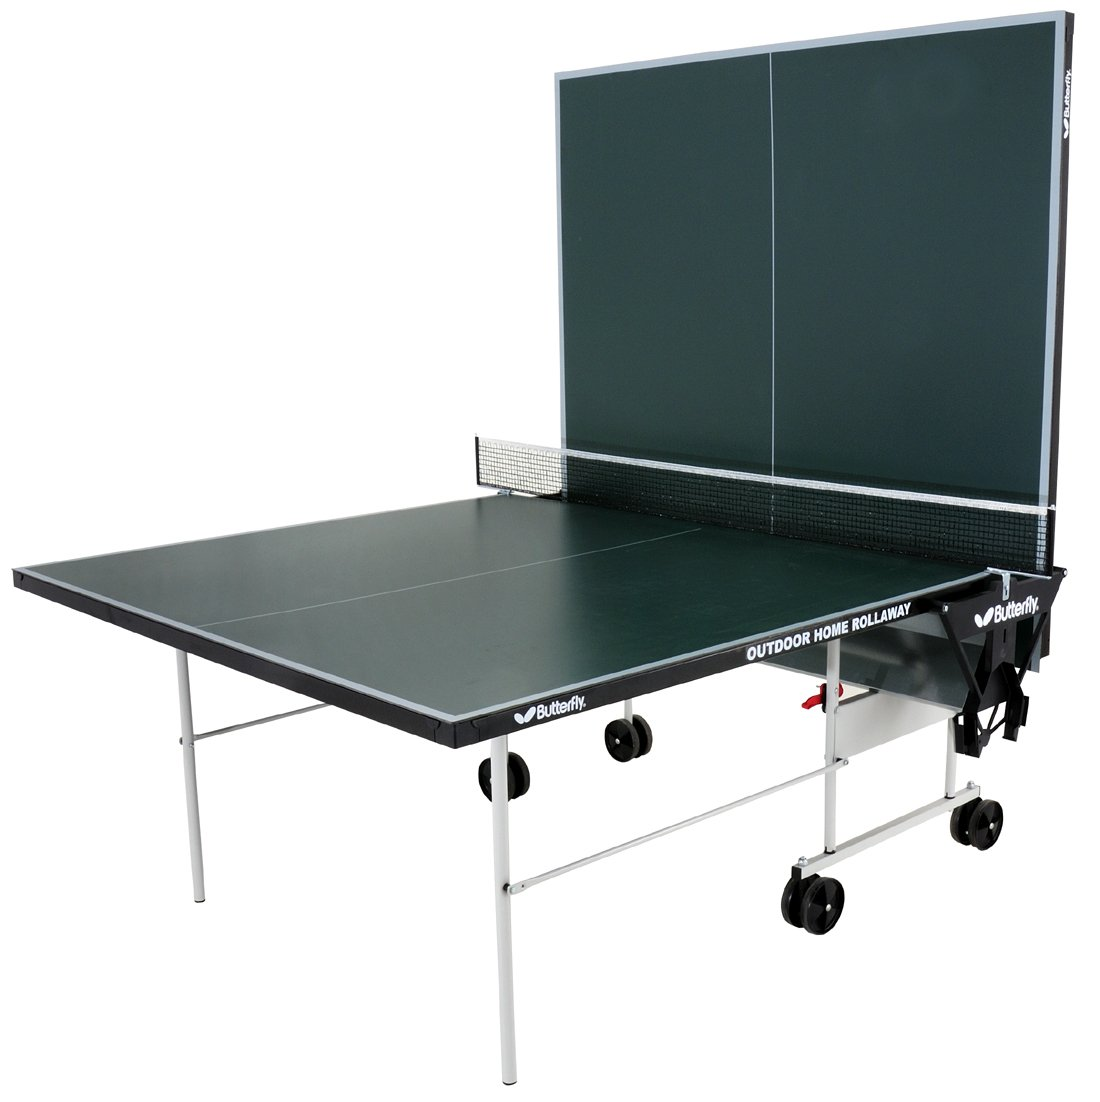 Butterfly Outdoor Home Rollaway Table Tennis Table   Green: Amazon.co.uk:  Sports U0026 Outdoors